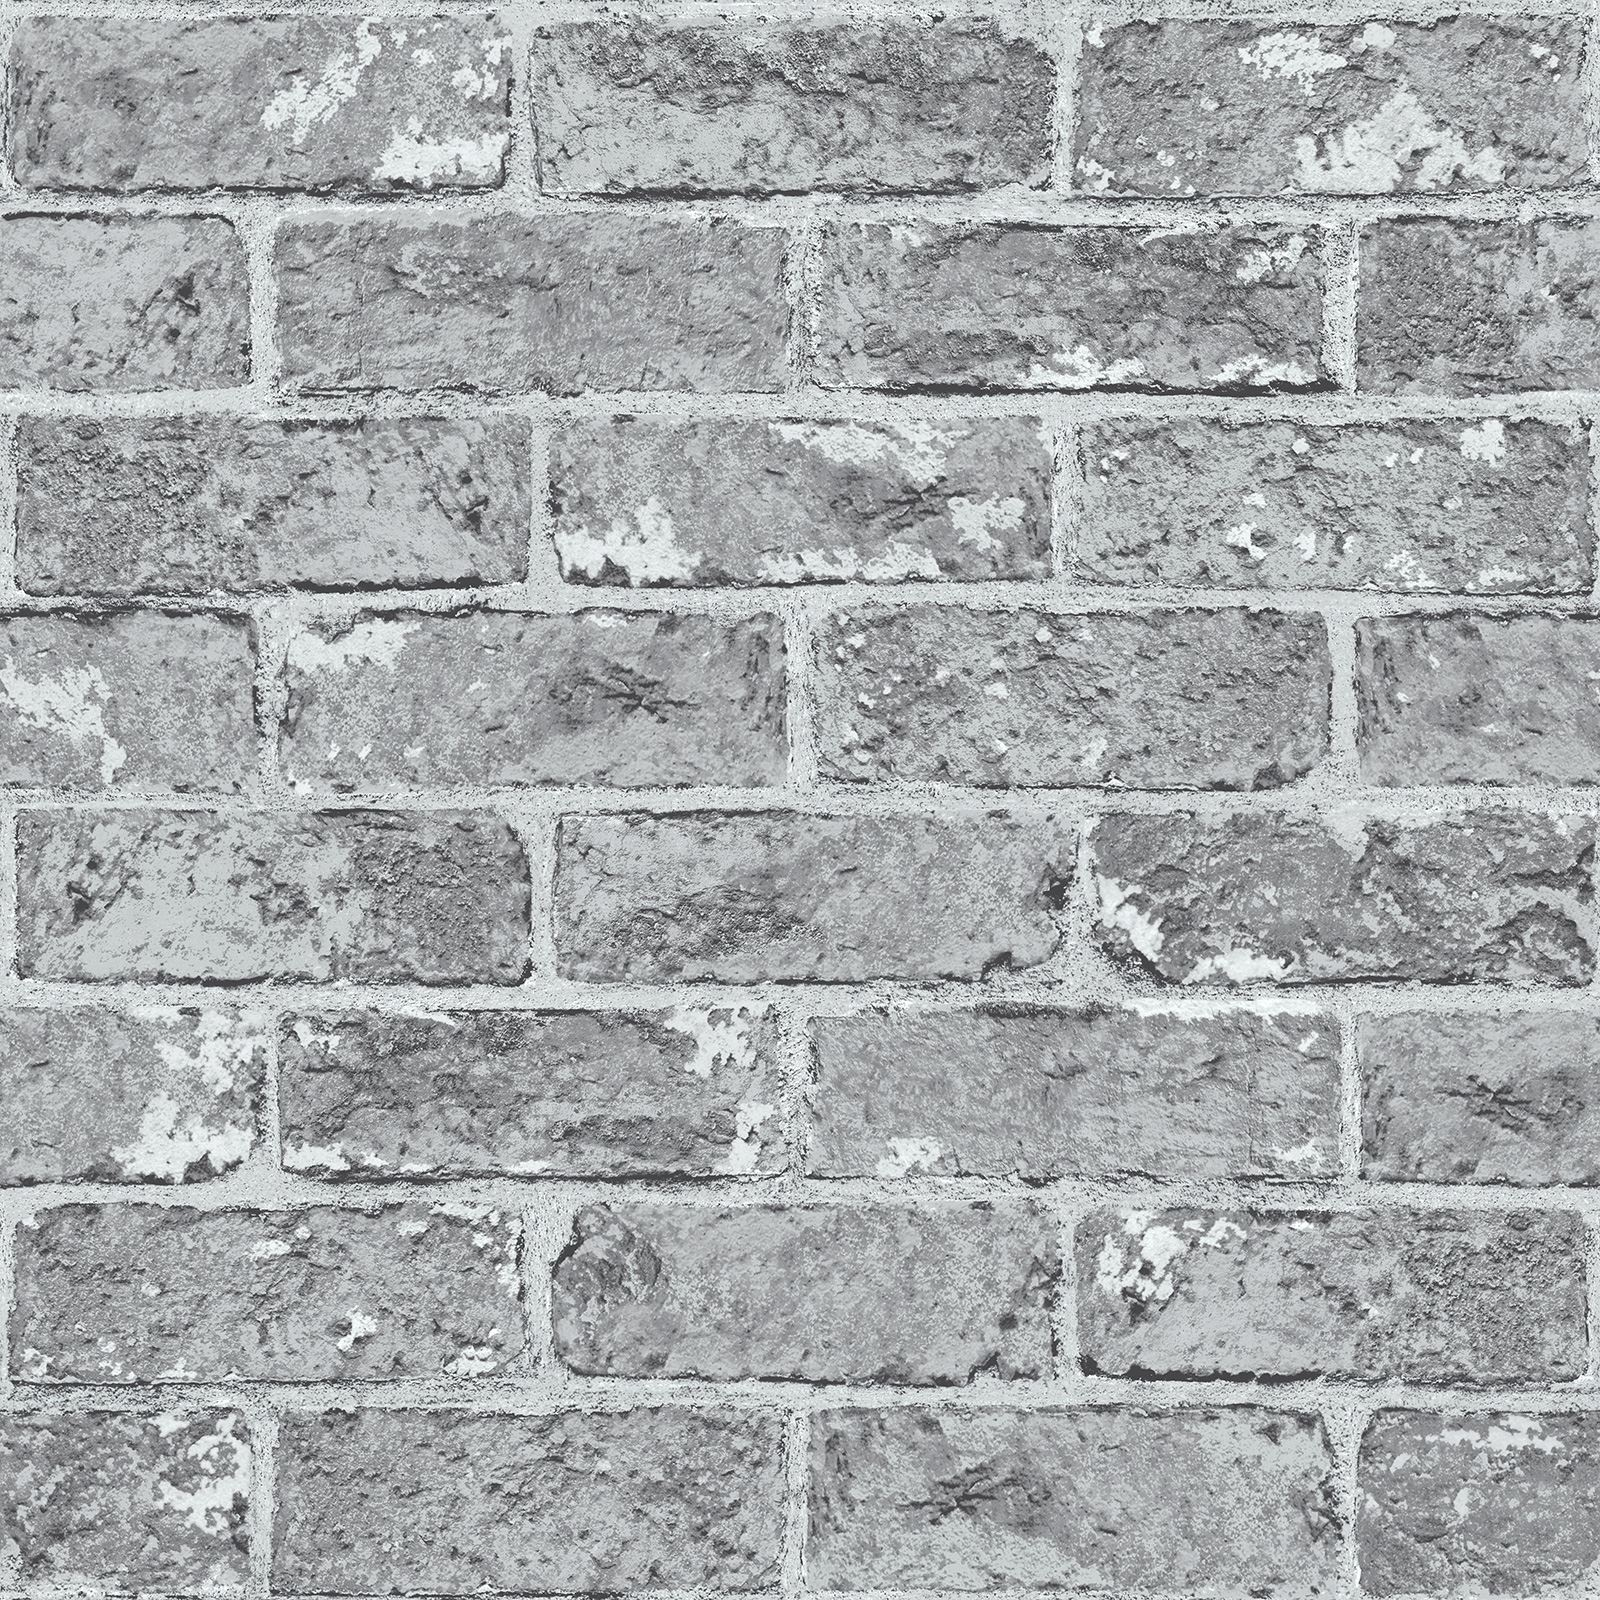 Cornish Stone Effect Wallpaper From B Q: RASCH & FINE DECOR 10M LUXURY BRICK EFFECT WALLPAPER STONE